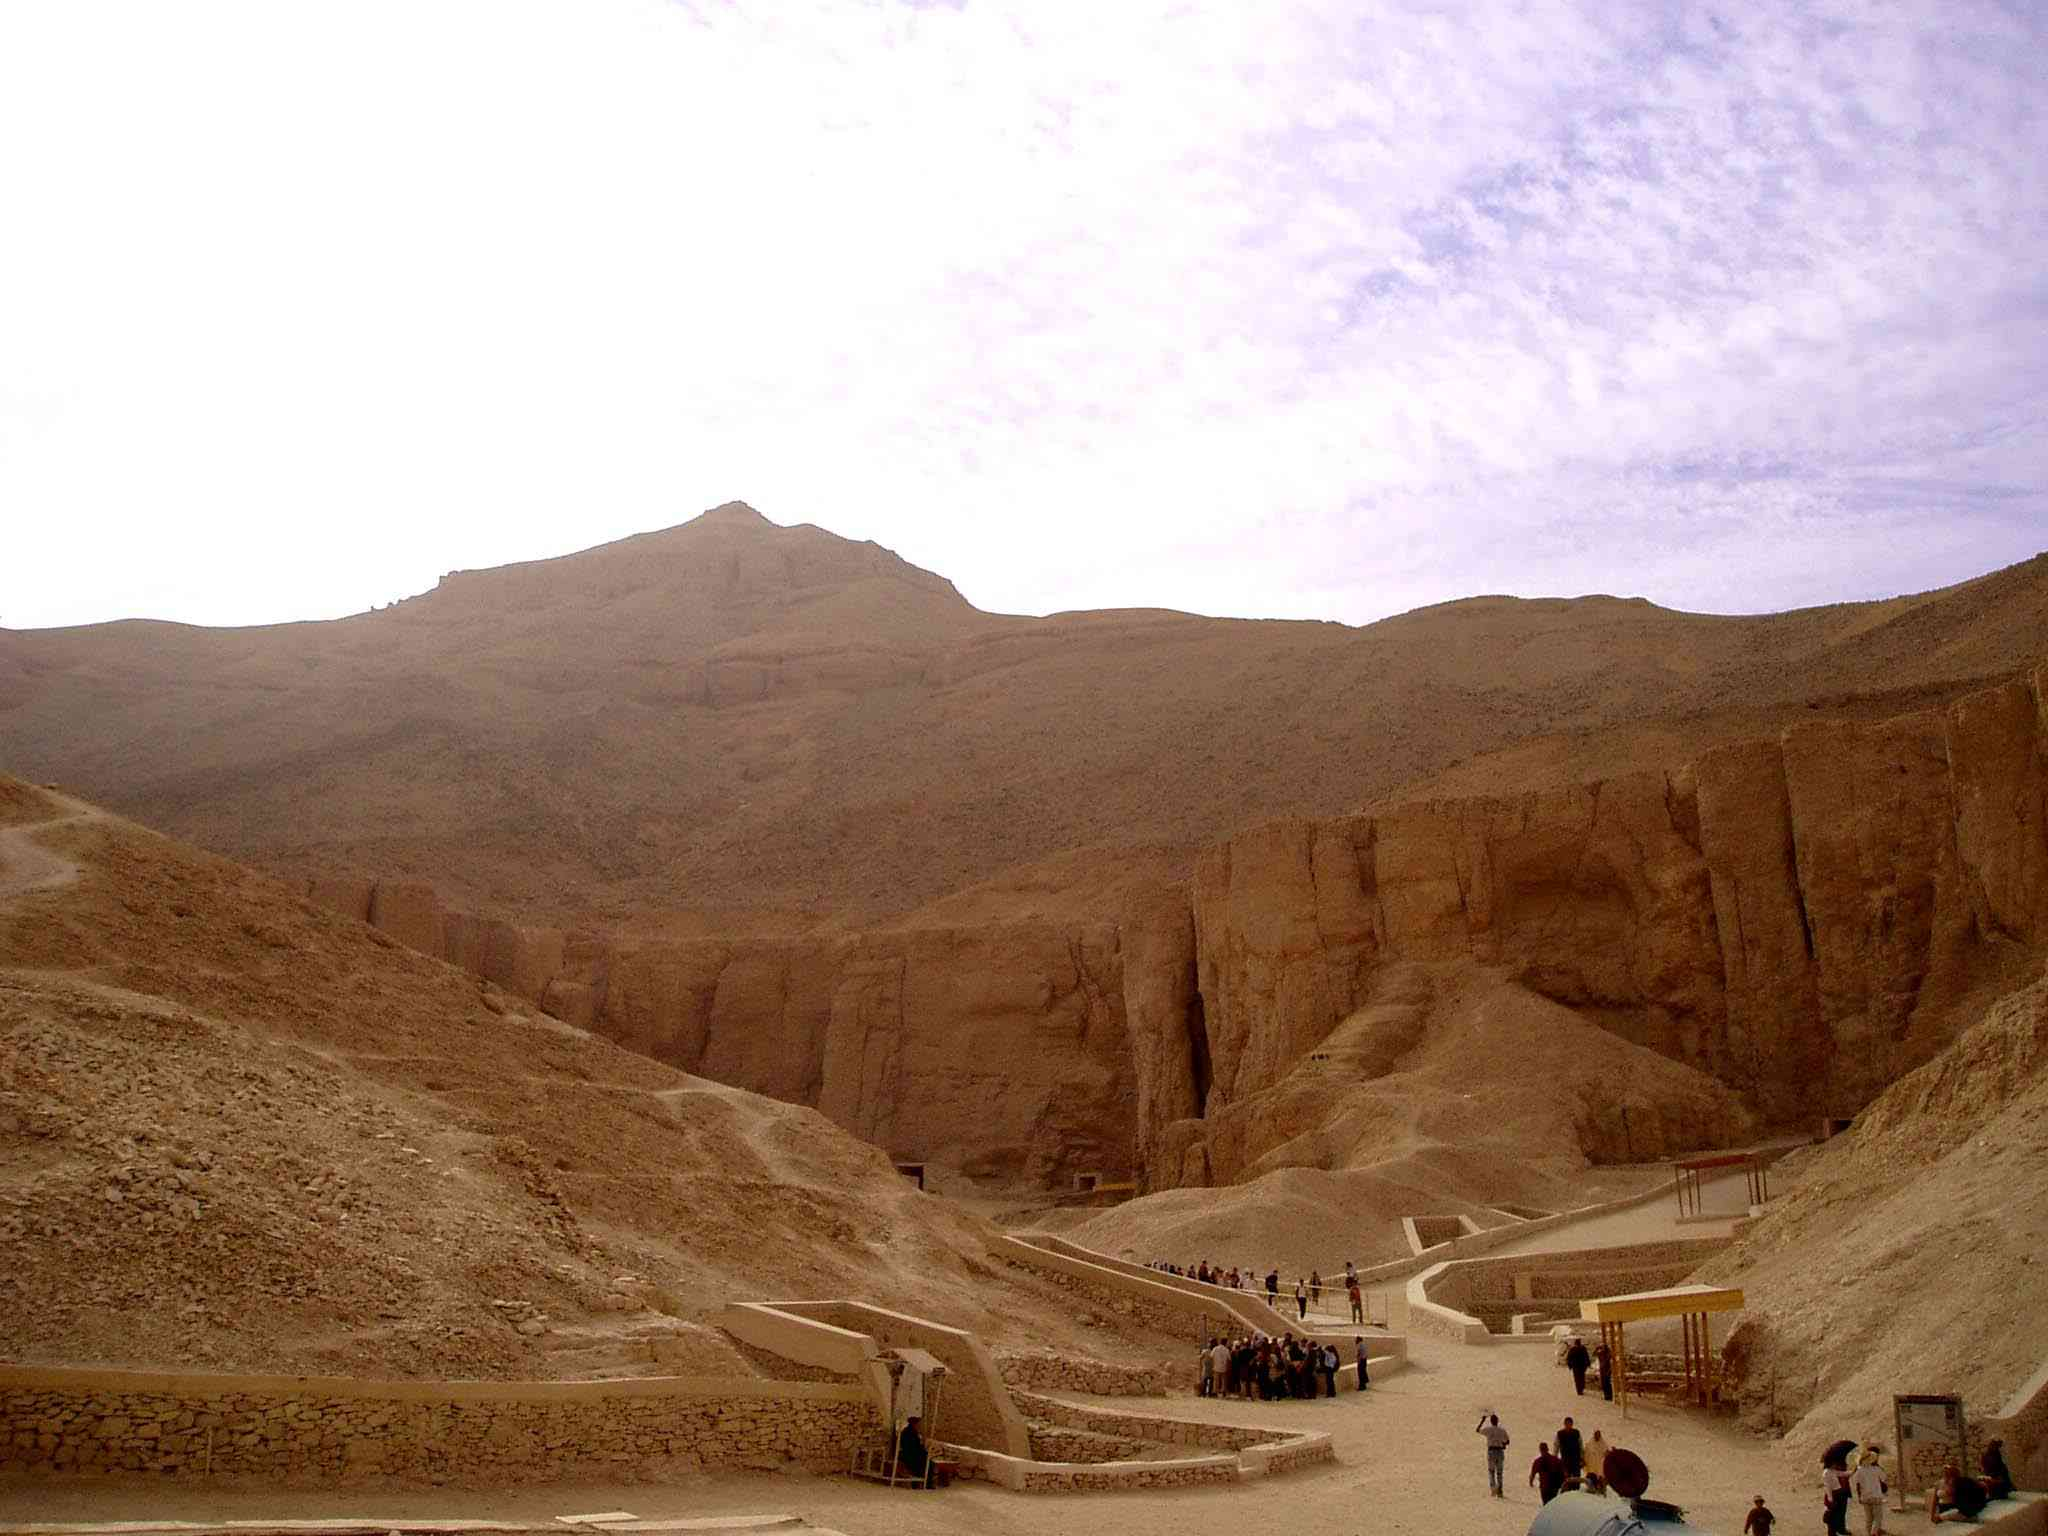 Valley of the Kings outside Luxor, Egypt